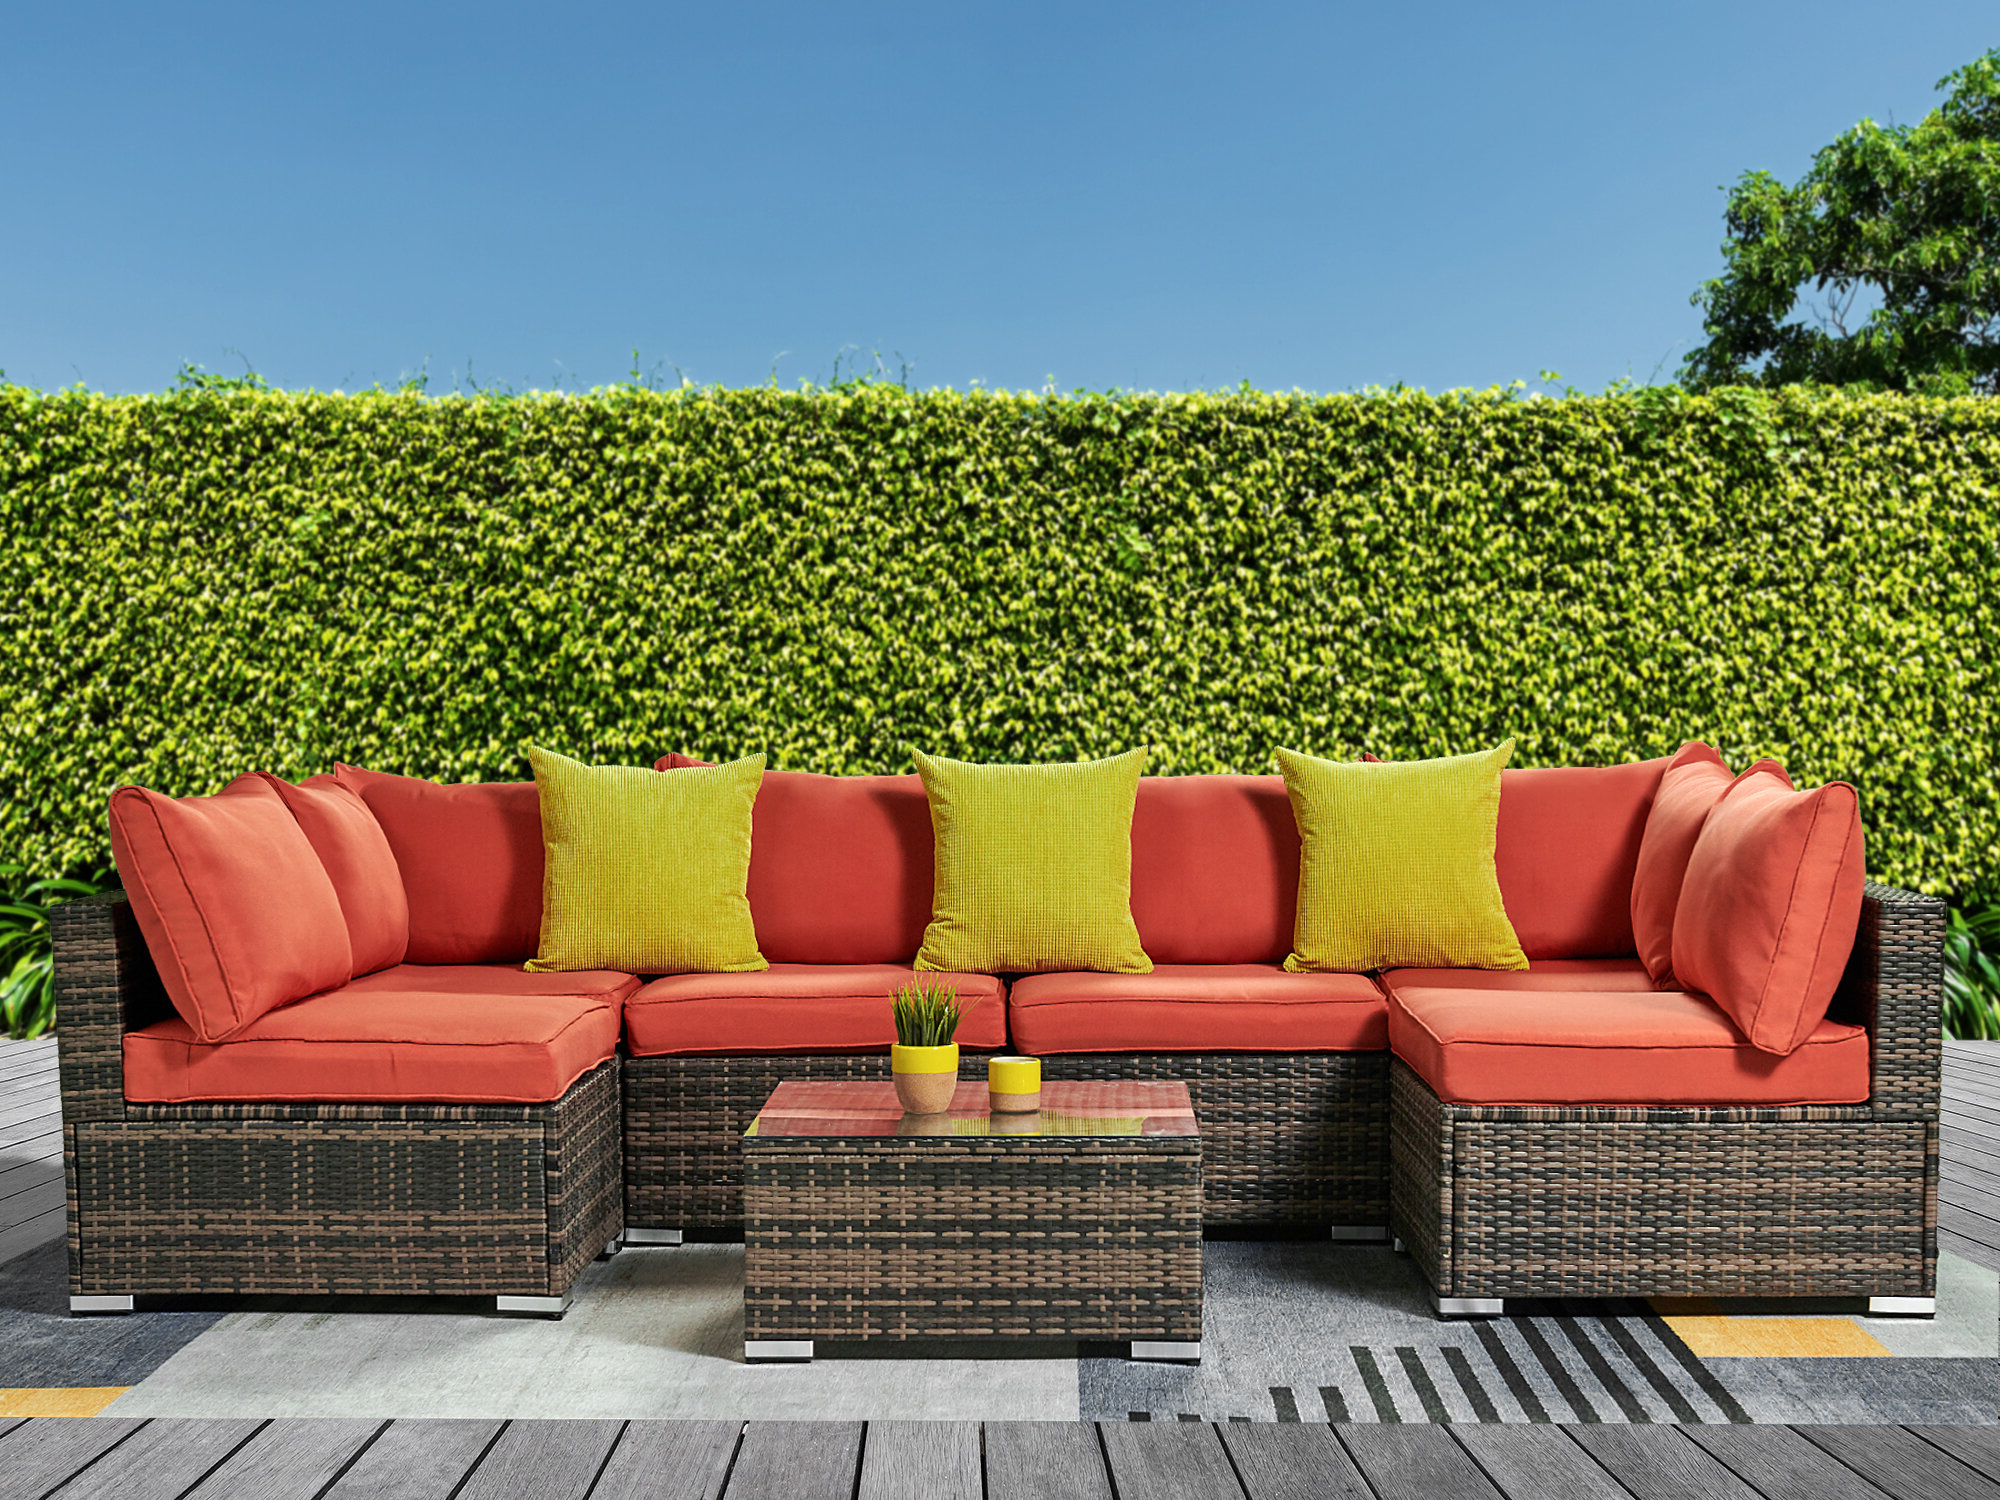 Wayfair Intended For Current Greta Living Patio Sectionals With Cushions (Gallery 17 of 20)